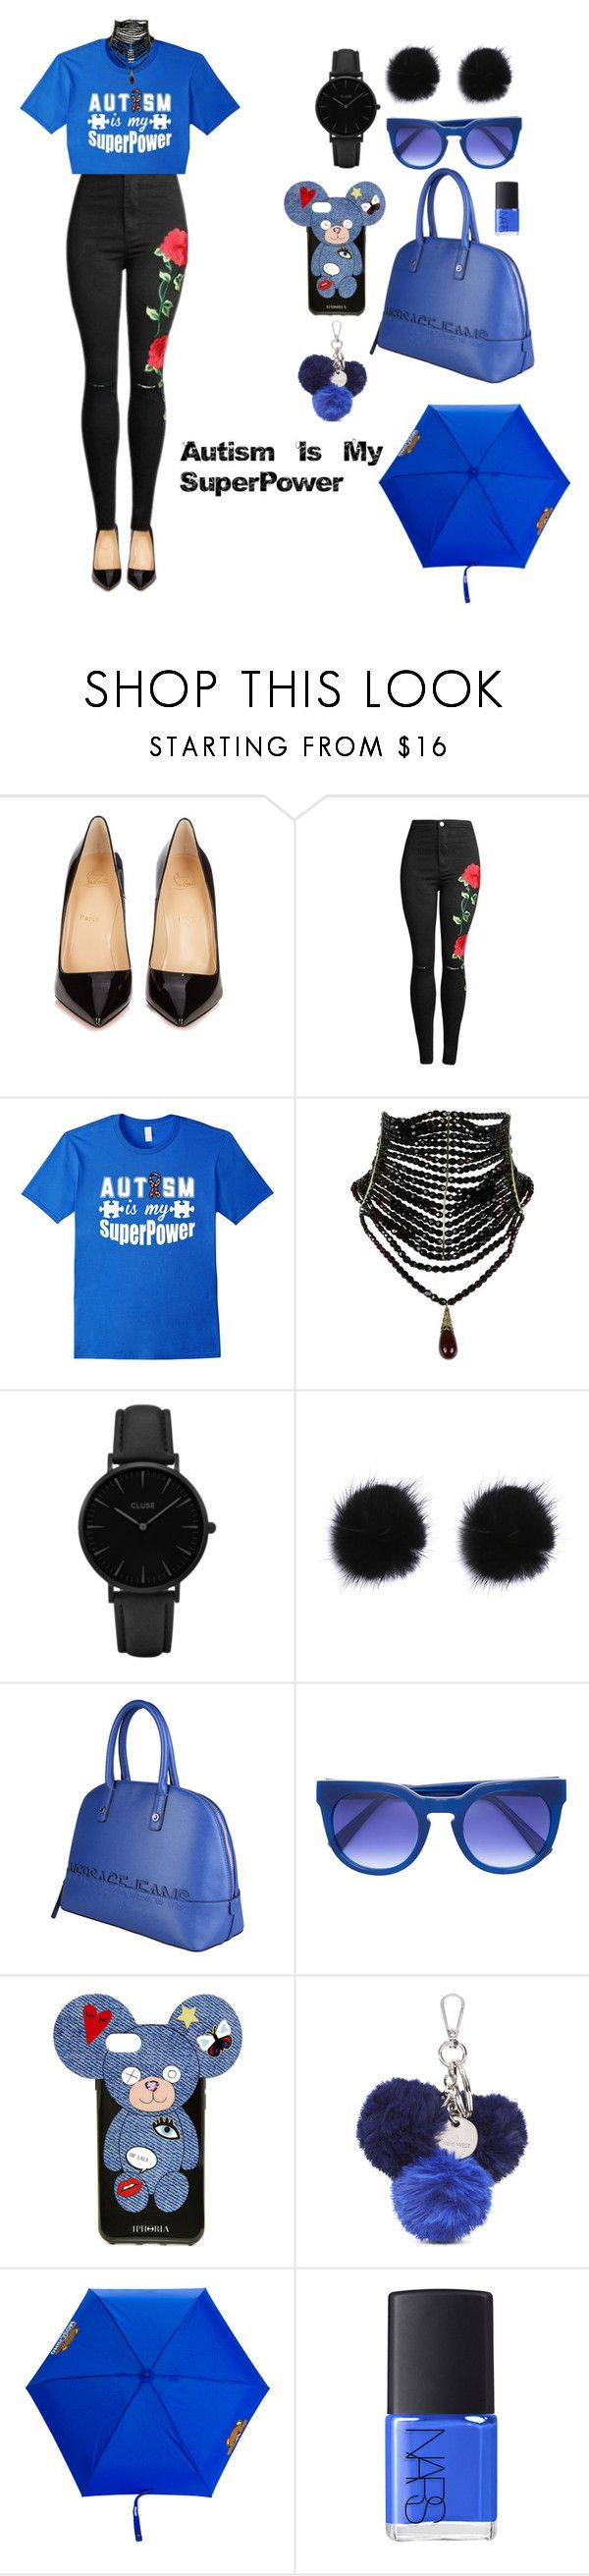 """Autism Is My Superpower T Shirt"" by beldisegno ❤ liked on Polyvore featuring Christian Louboutin, CLUSE, Versace, Iphoria, Nine West, Moschino and NARS Cosmetics"